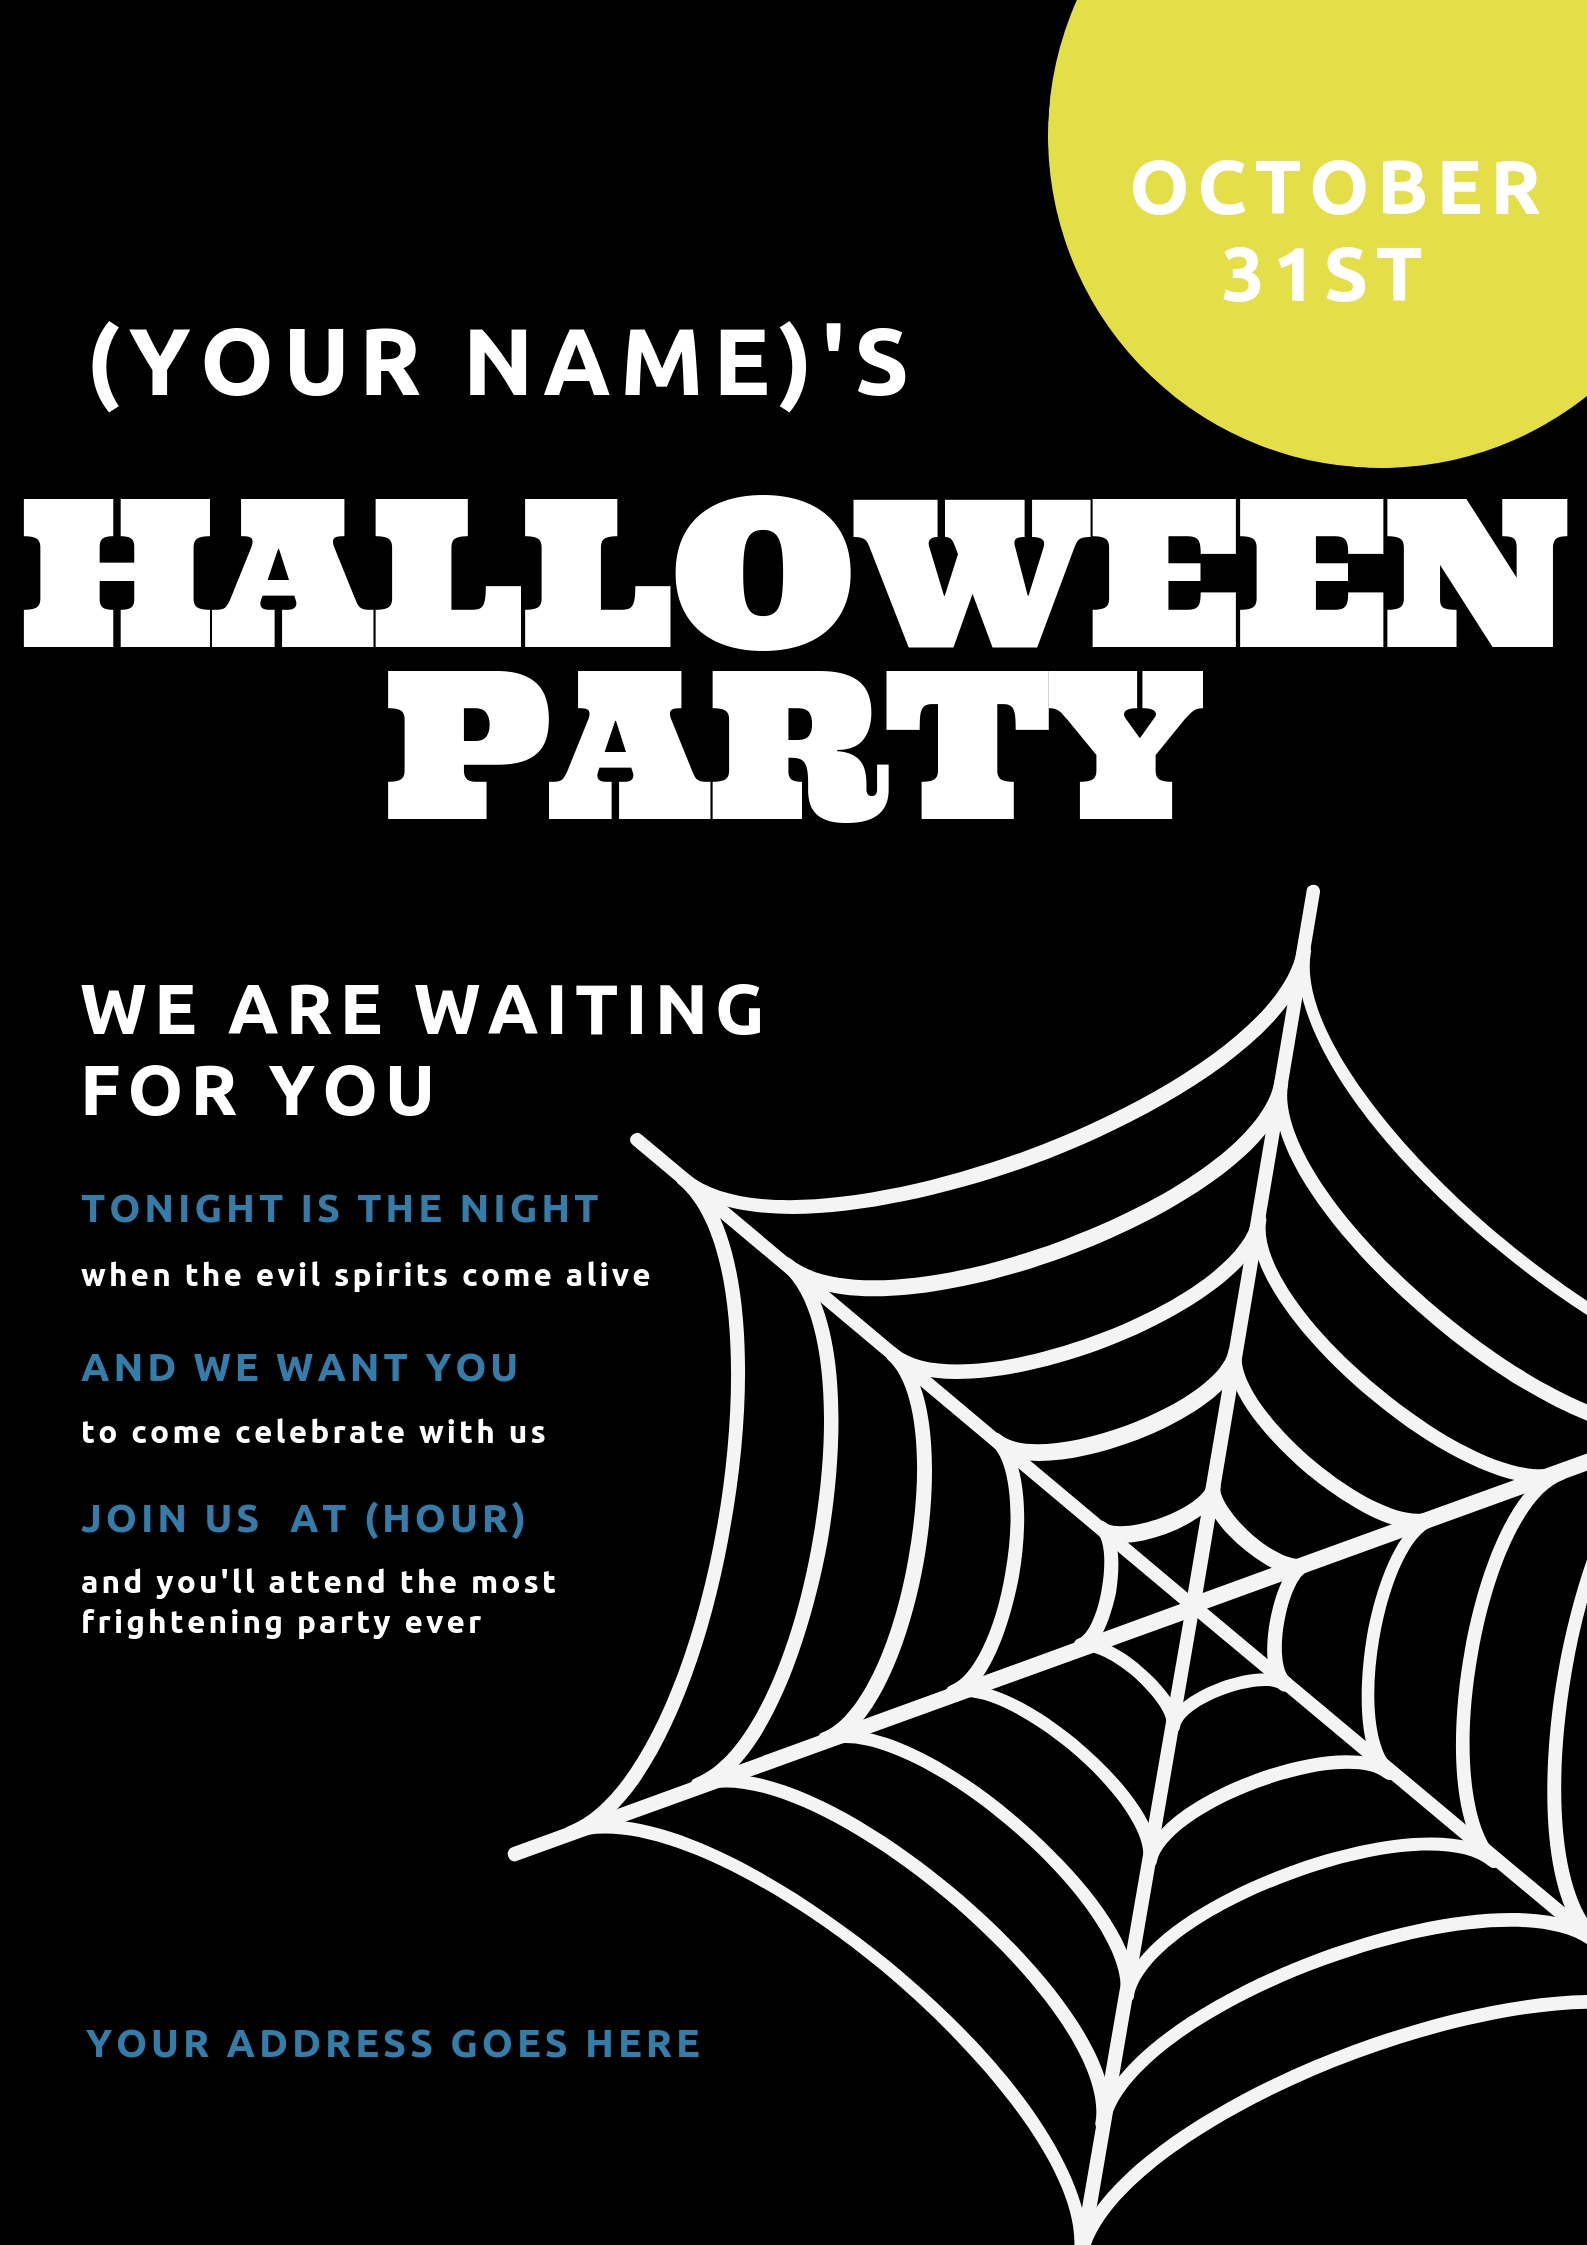 send you a personalized halloween party invitationwellidontknow